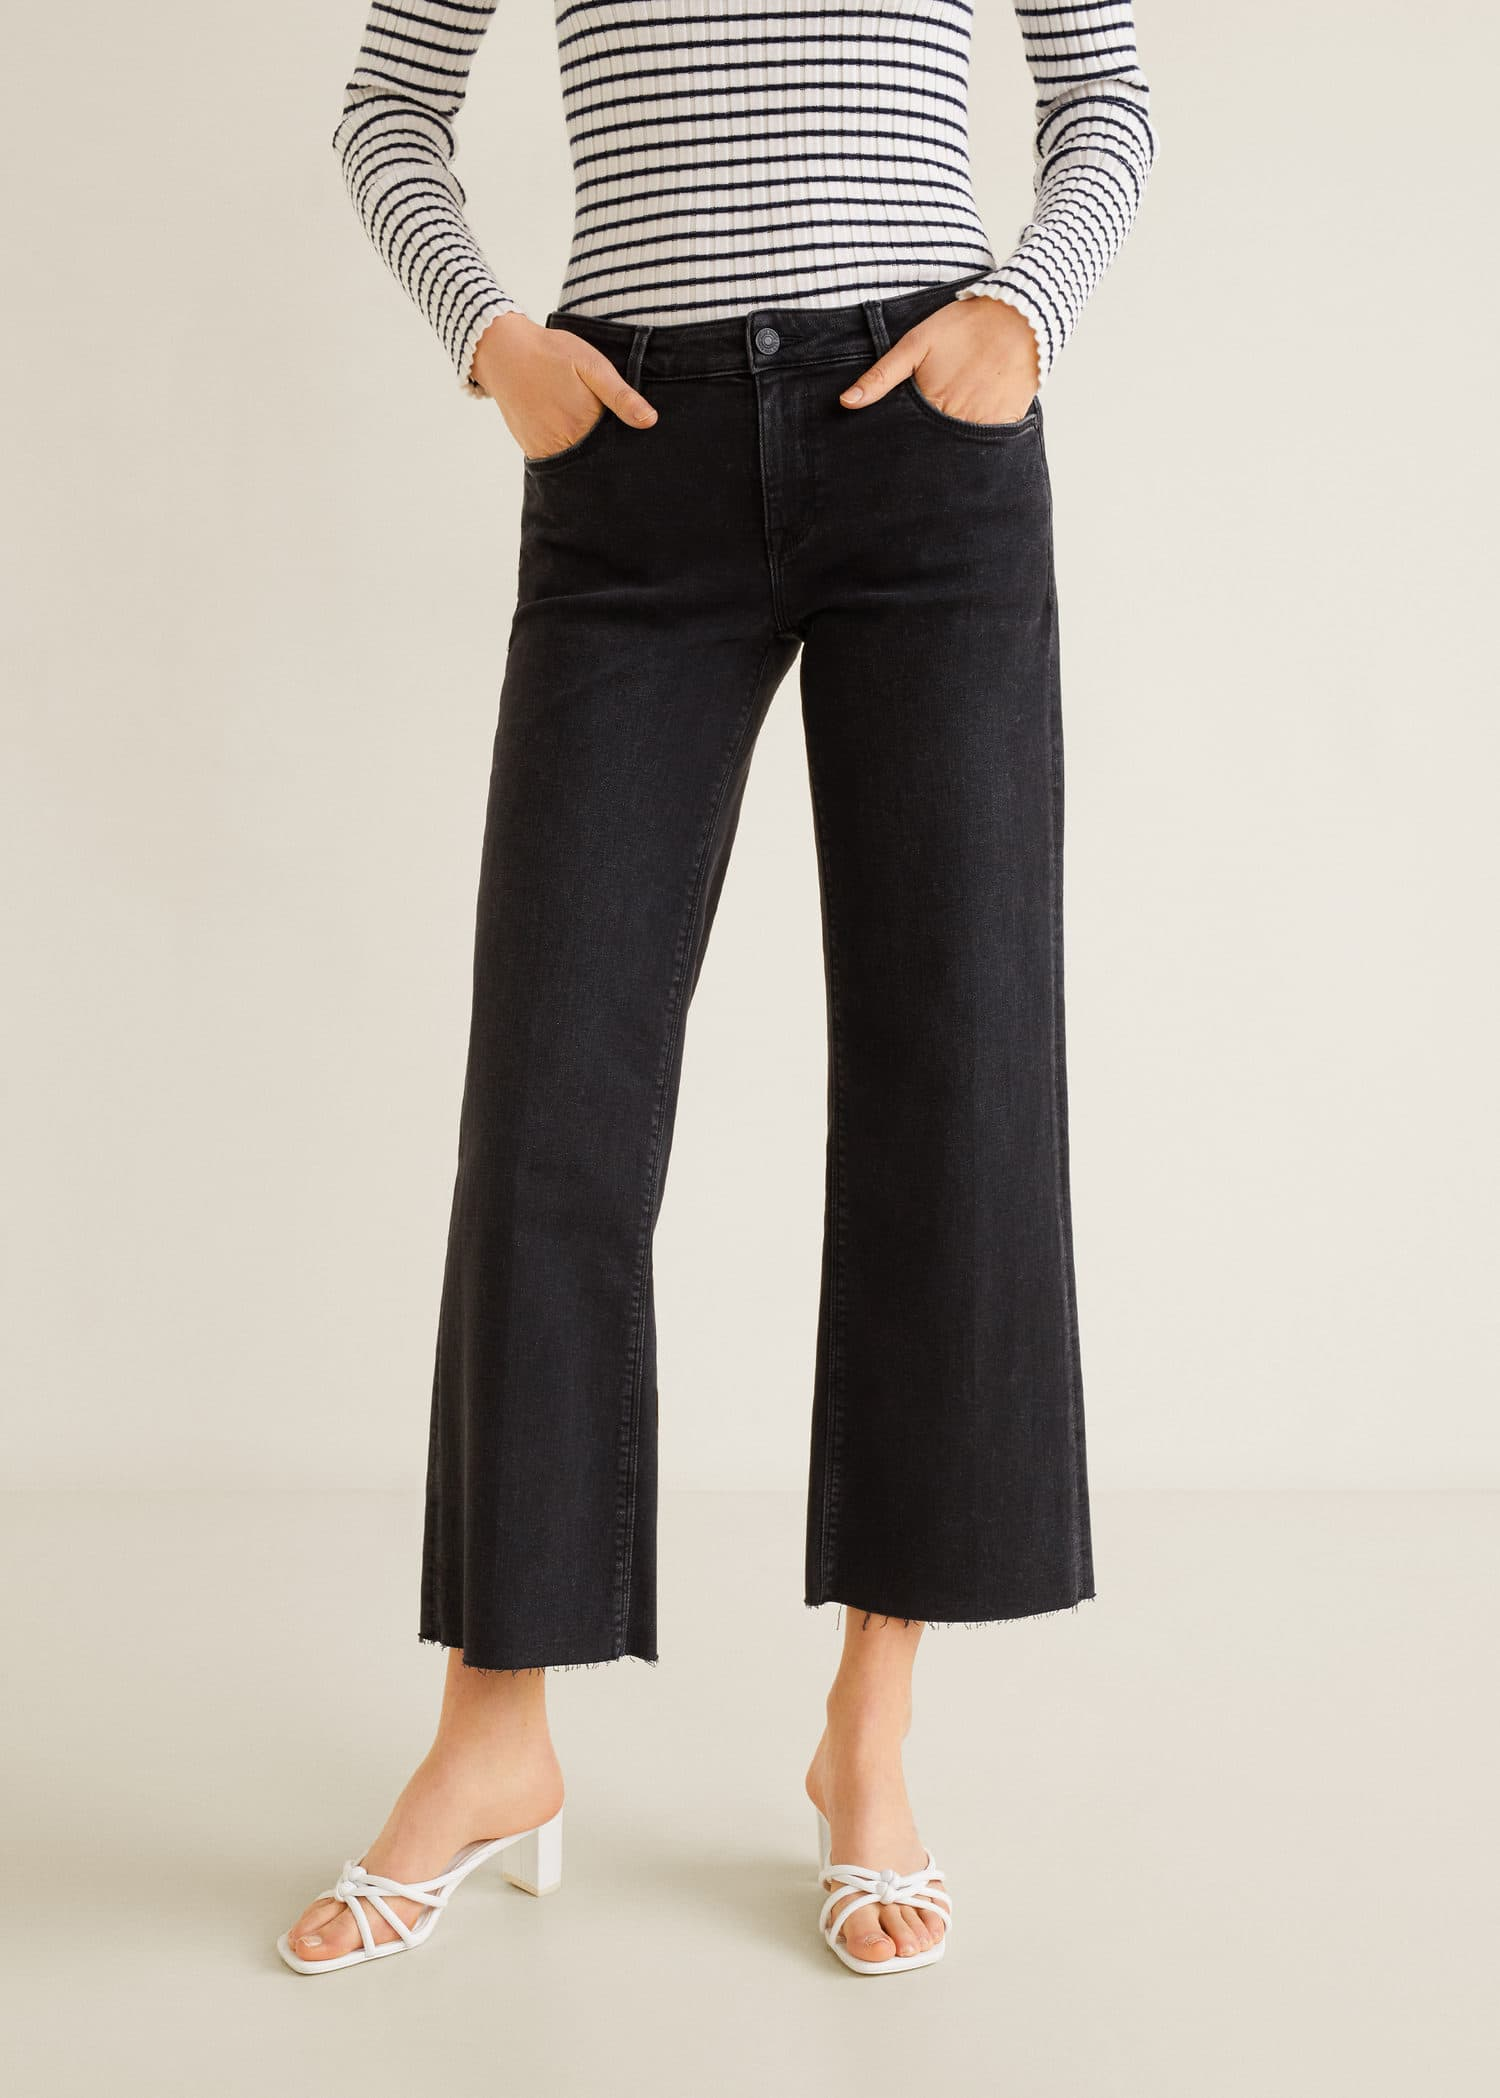 Mango Audrey Macedonia Jeans Crop Woman pxwgWPtOqP